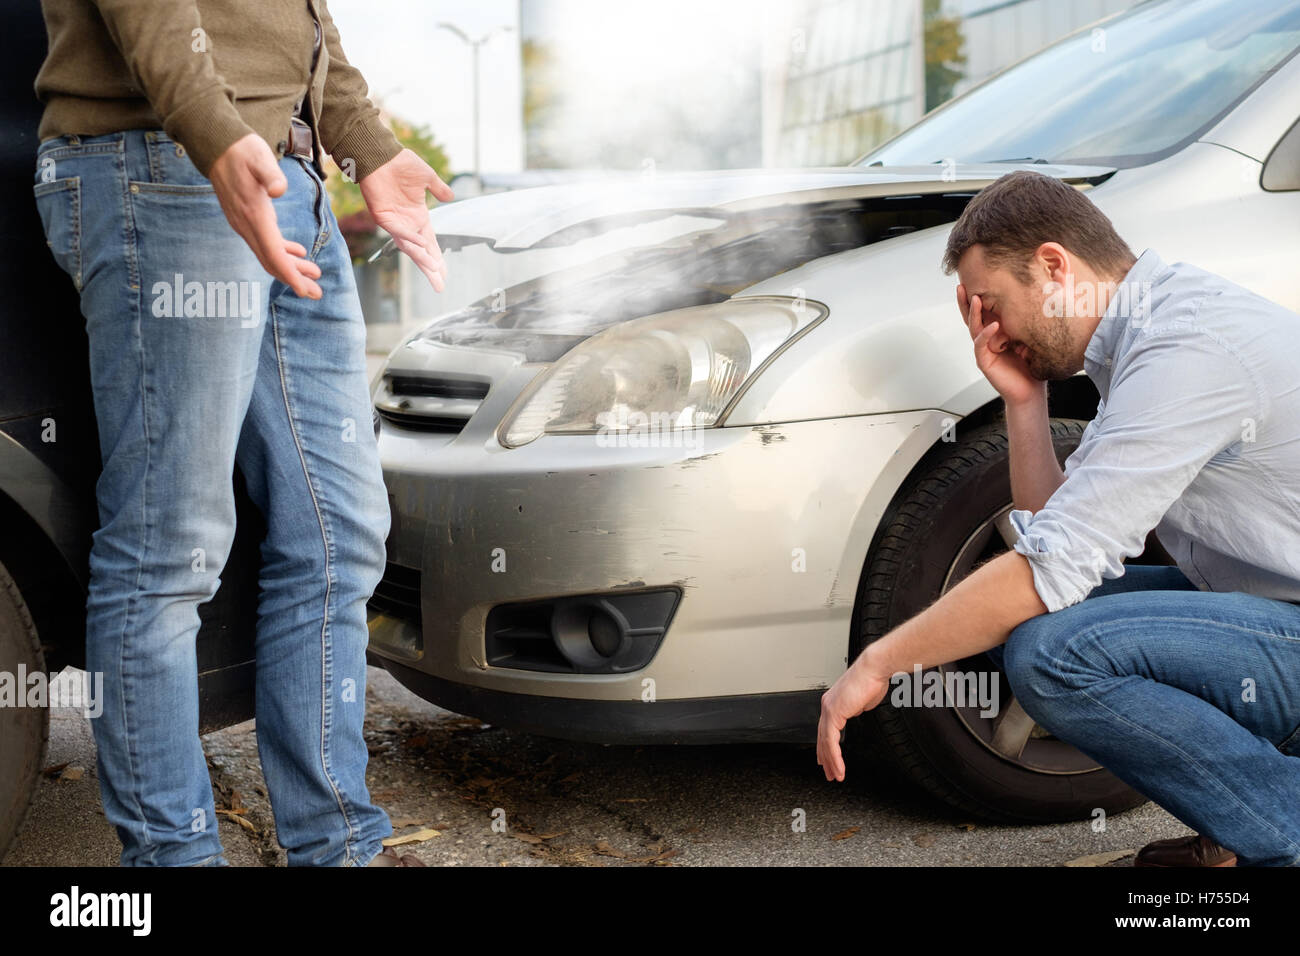 Two men arguing after a car accident on the road - Stock Image